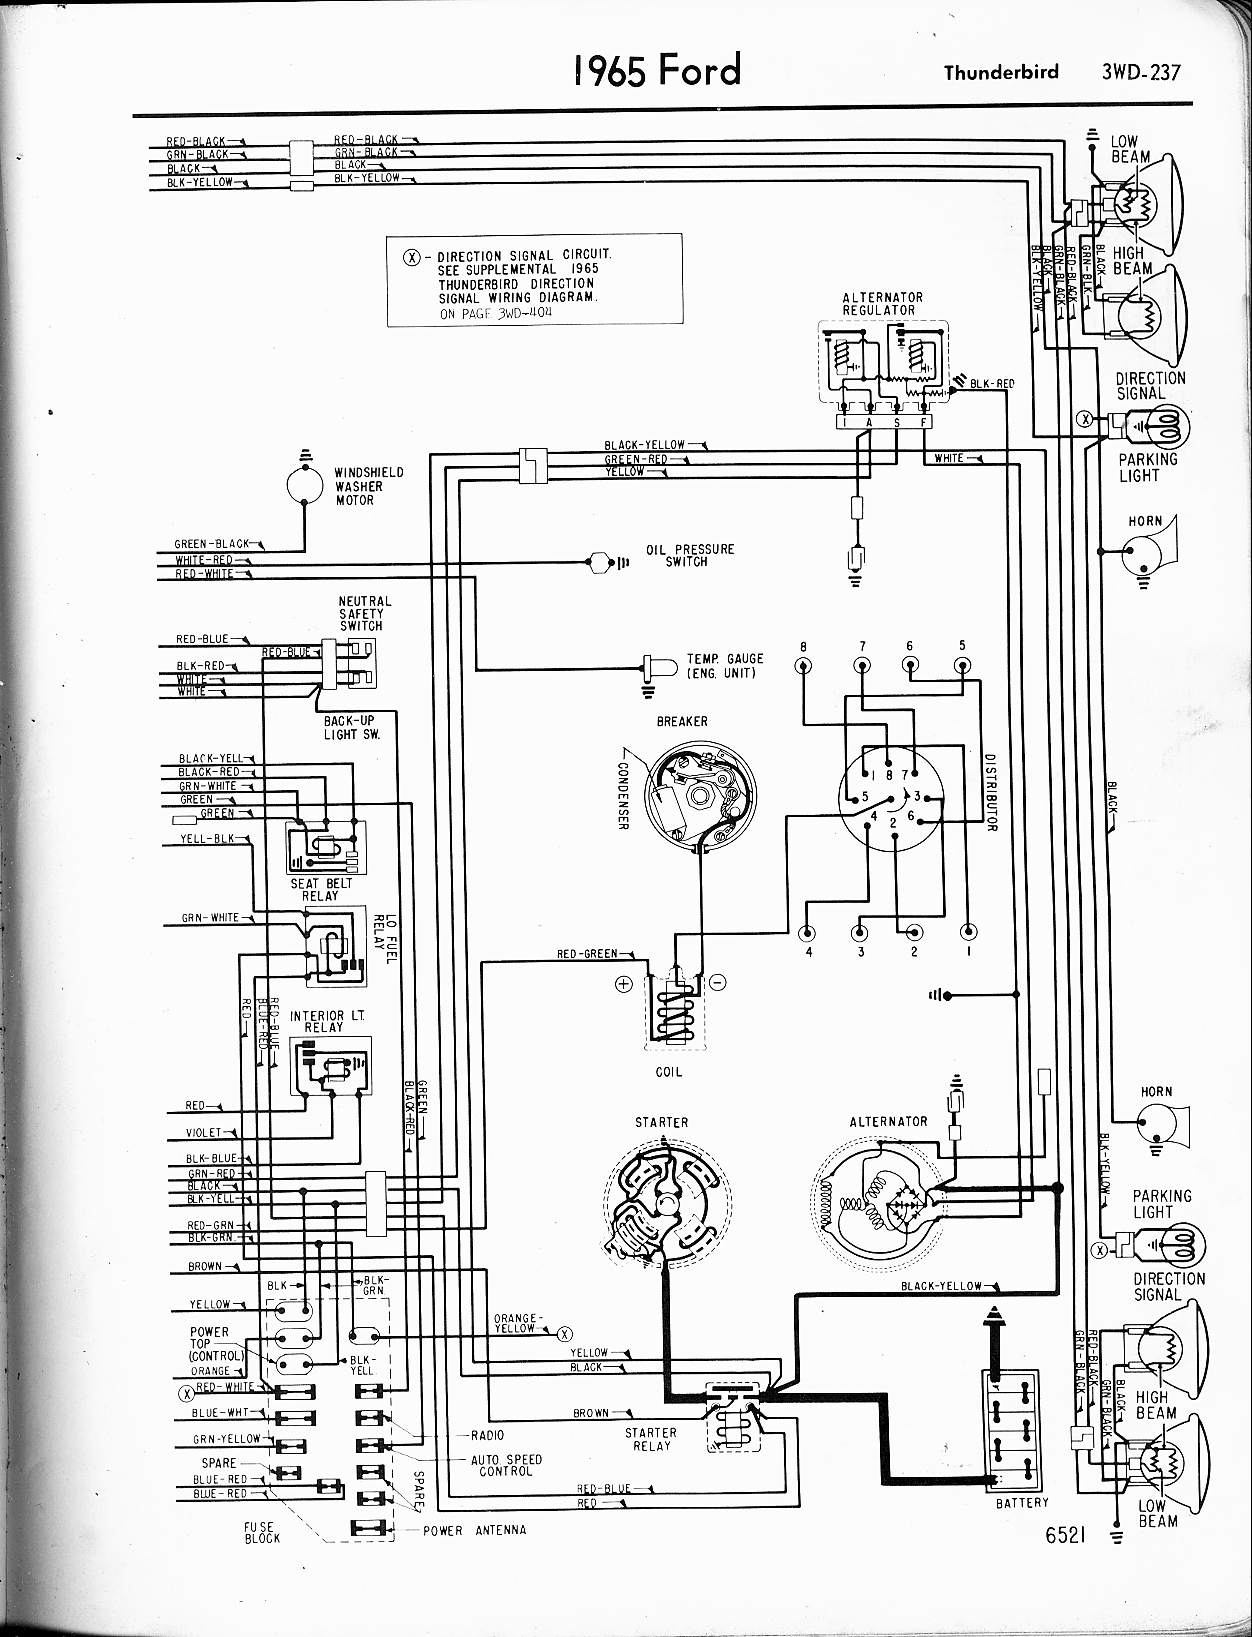 1965 ford falcon wiring diagram two way light switch canada 1969 ranchero schematic 1960 harness data 1966